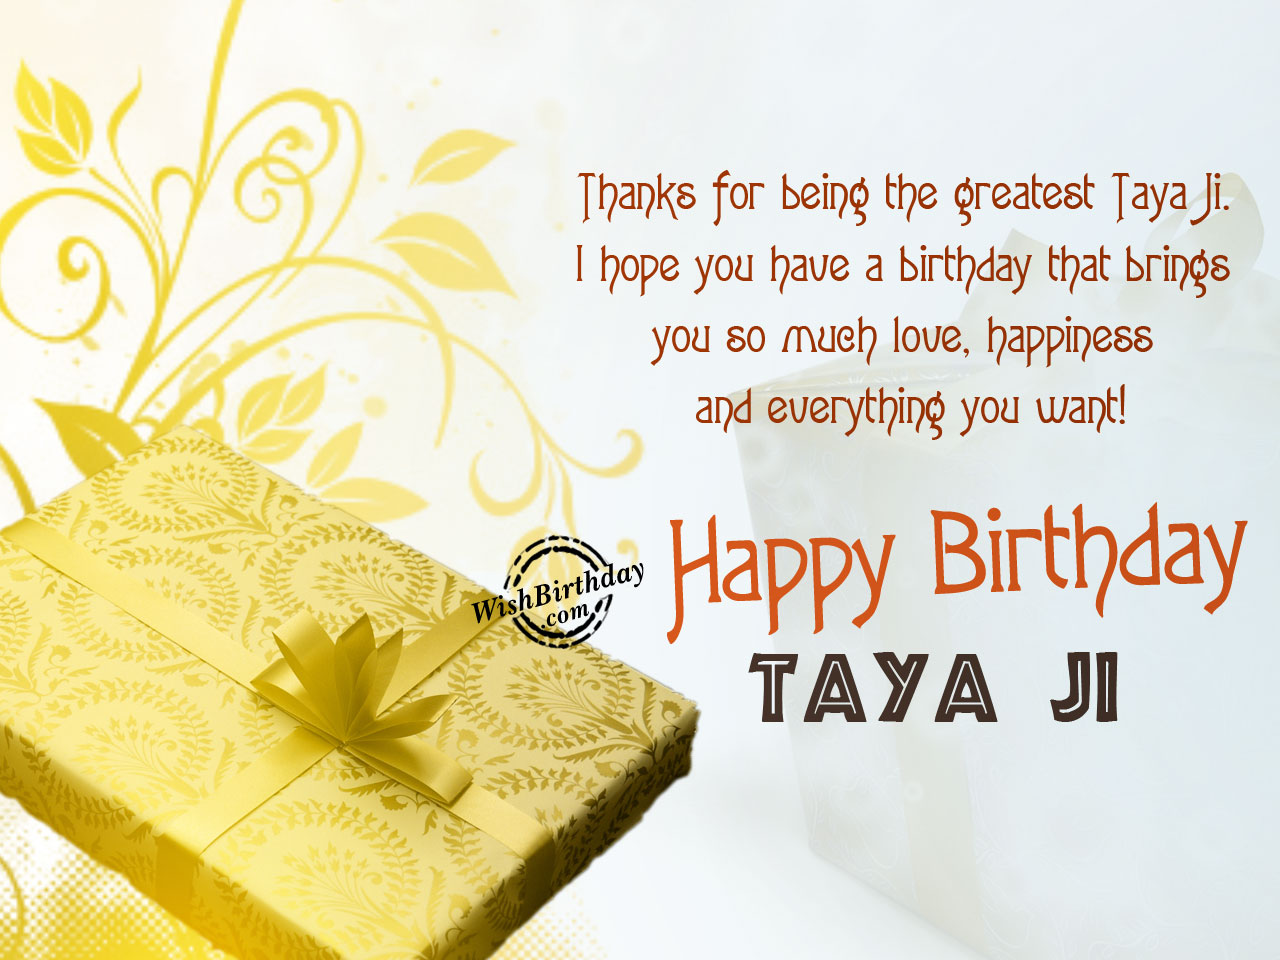 Taya ji , Wishing you happy birthday - WishBirthday.com